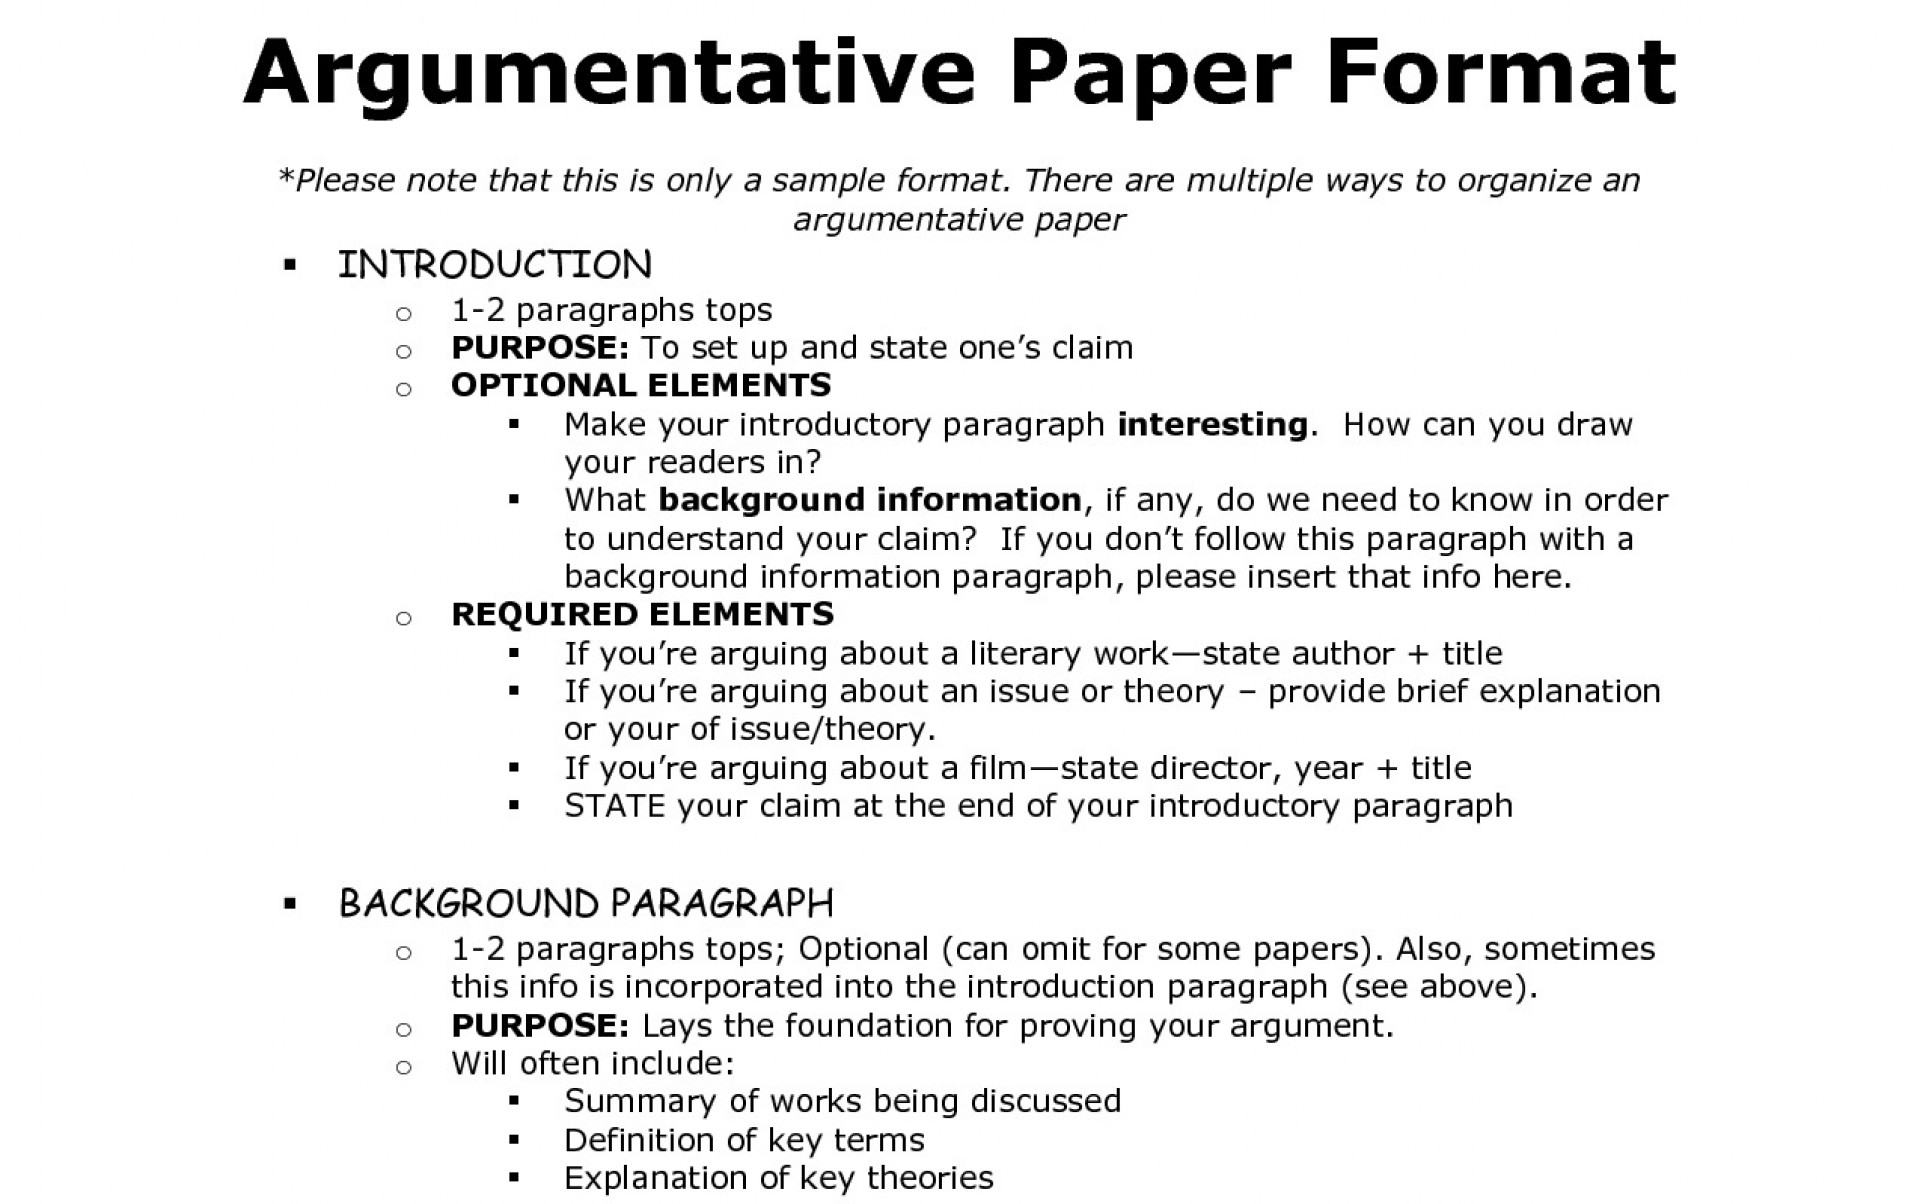 004 Essay Example How To Write An Argumentative Introduction Argument Sample Rubric The Primitive Rubrics For Writing Download Essays Examples Unique Pdf 1920